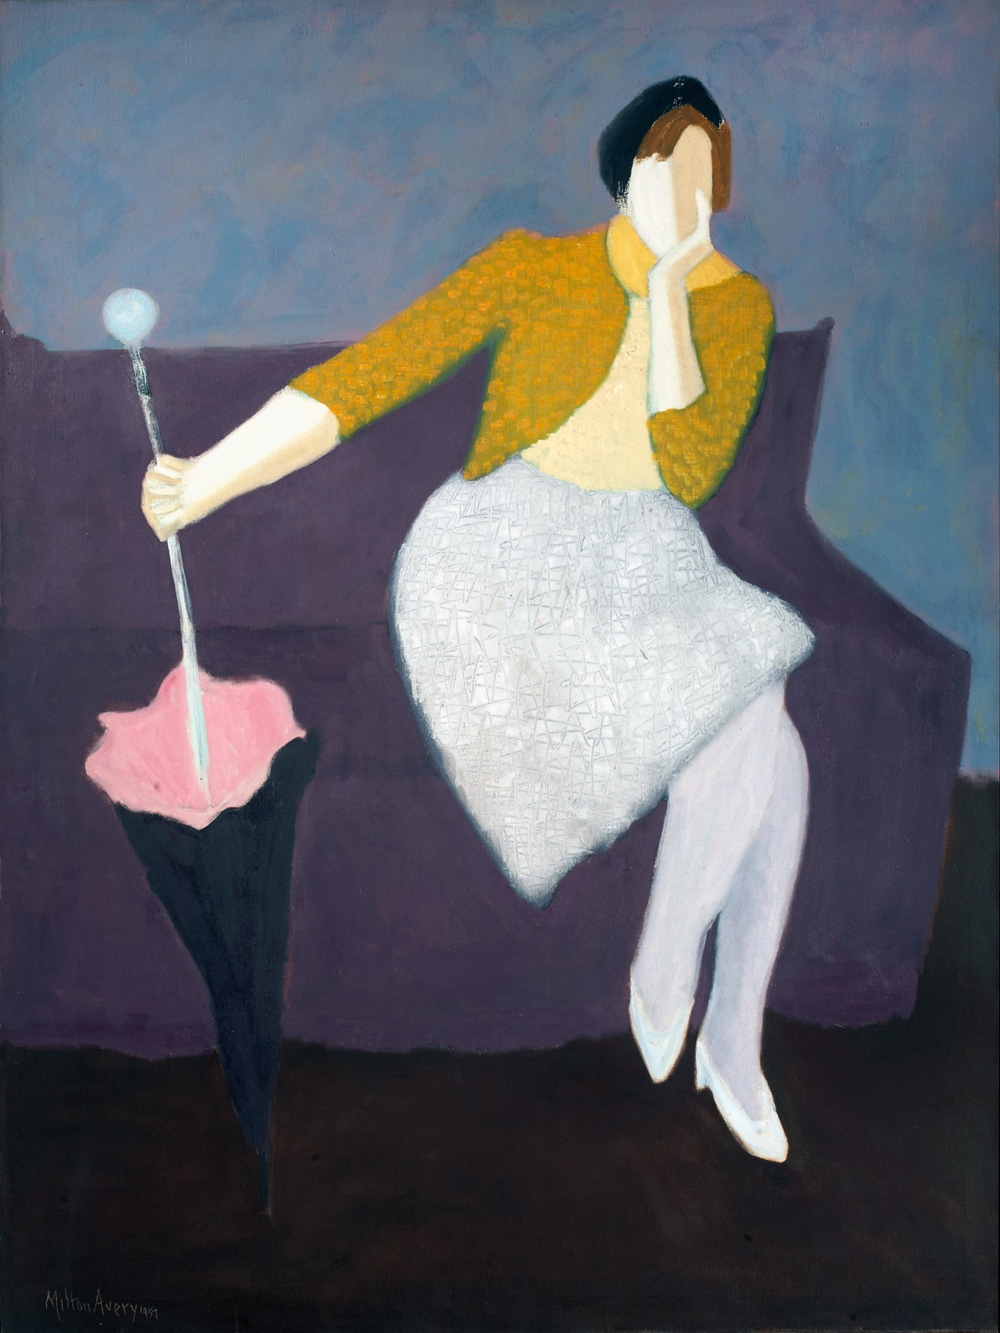 MILTON AVERY  (1885-1965)   Parasol , 1957 Oil on canvas 53 x 40 inches 134.6 x 101.6 cm Private Collection